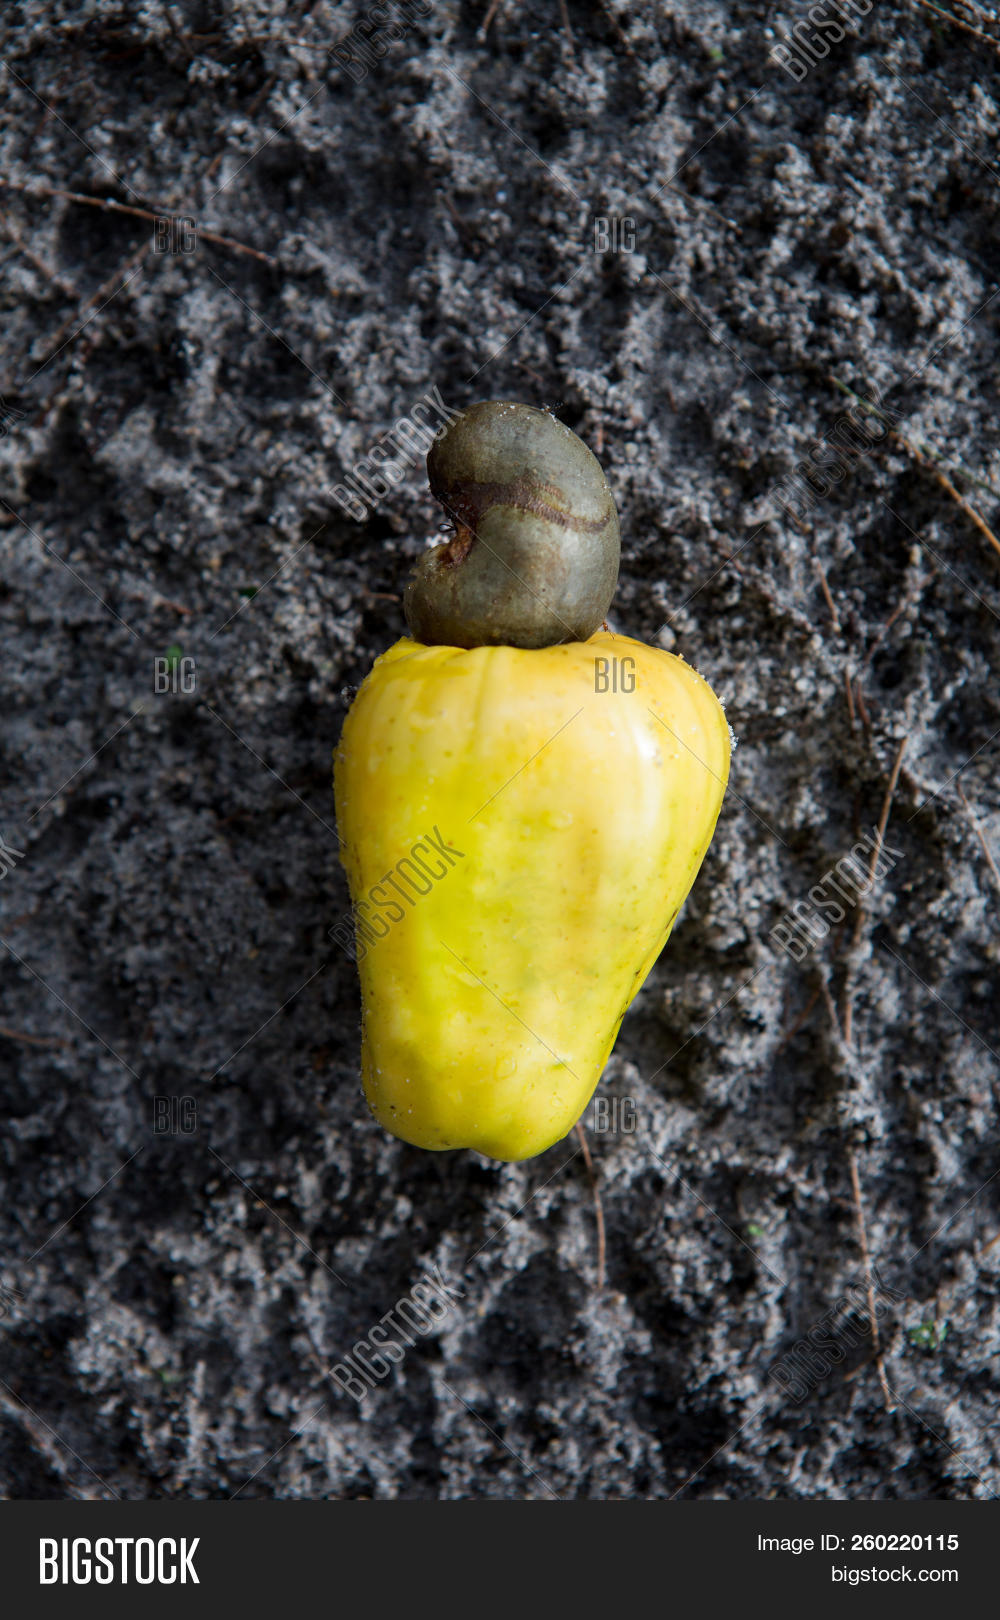 raw cashew nut, Anacardium occidentale, on sand floor